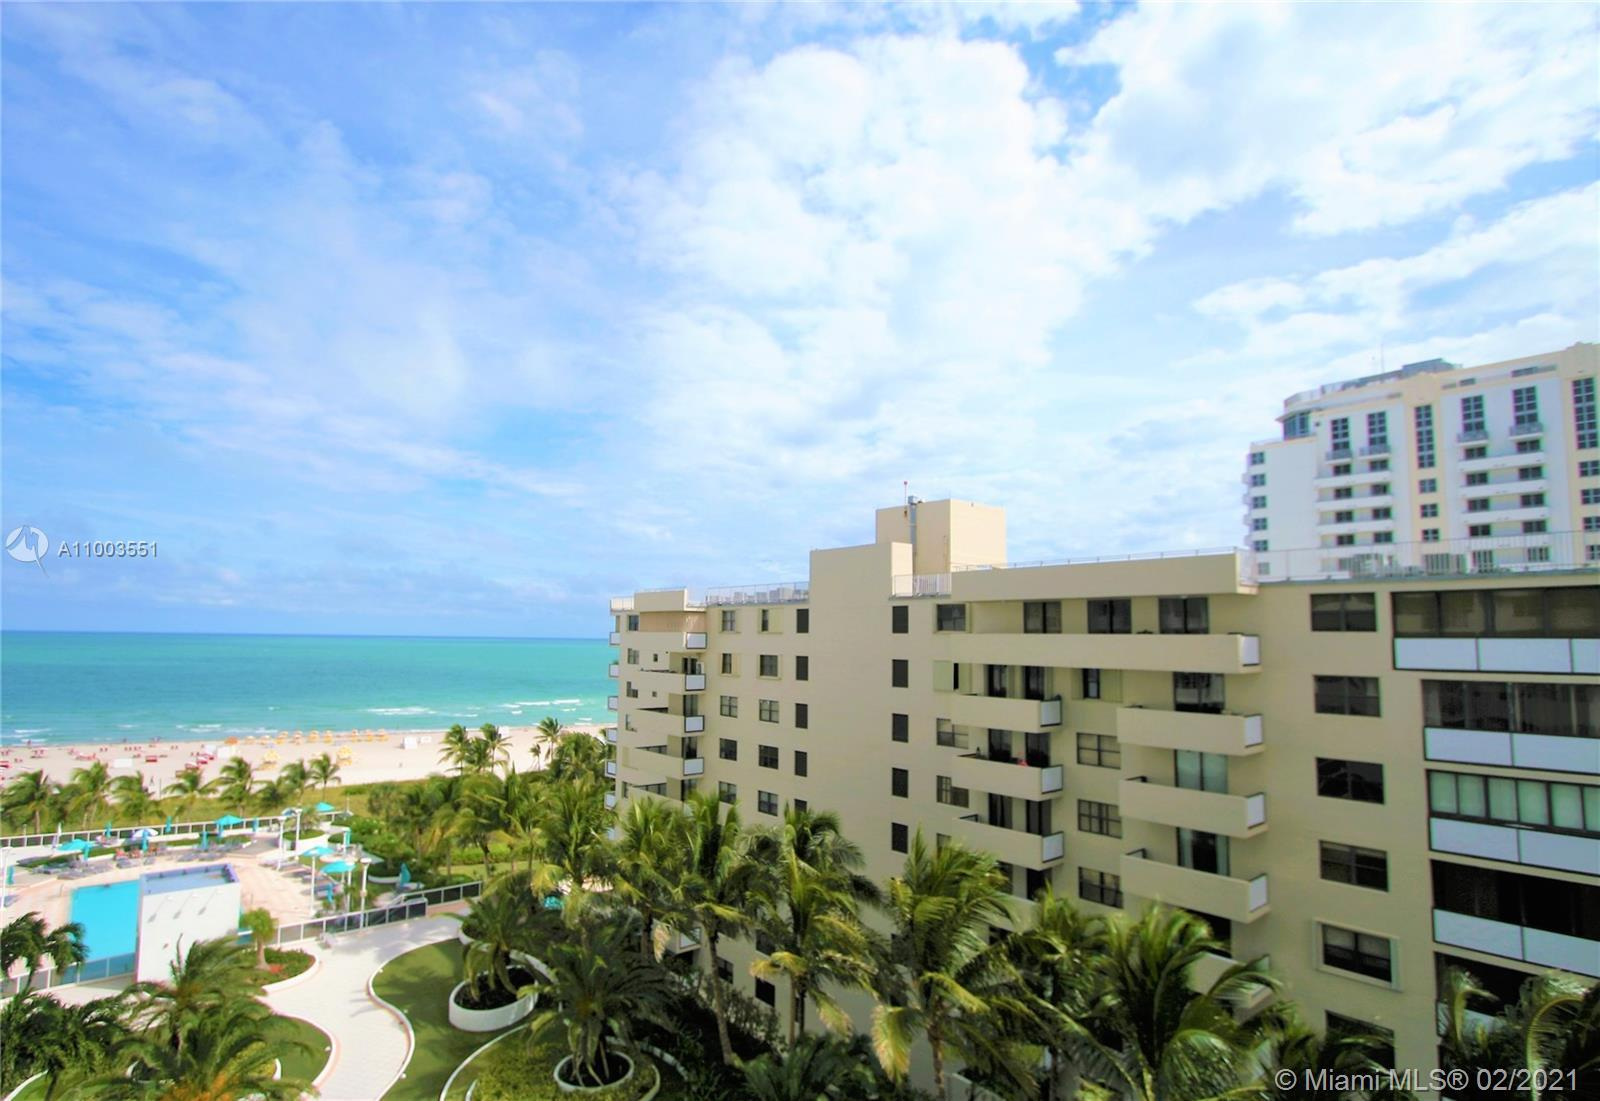 IMMACULATE UNIT AND DIRECT OCEAN VIEWS! SPECTACULAR PRIVATE BALCONY STARING DIRECTLY AT THE OCEAN AN